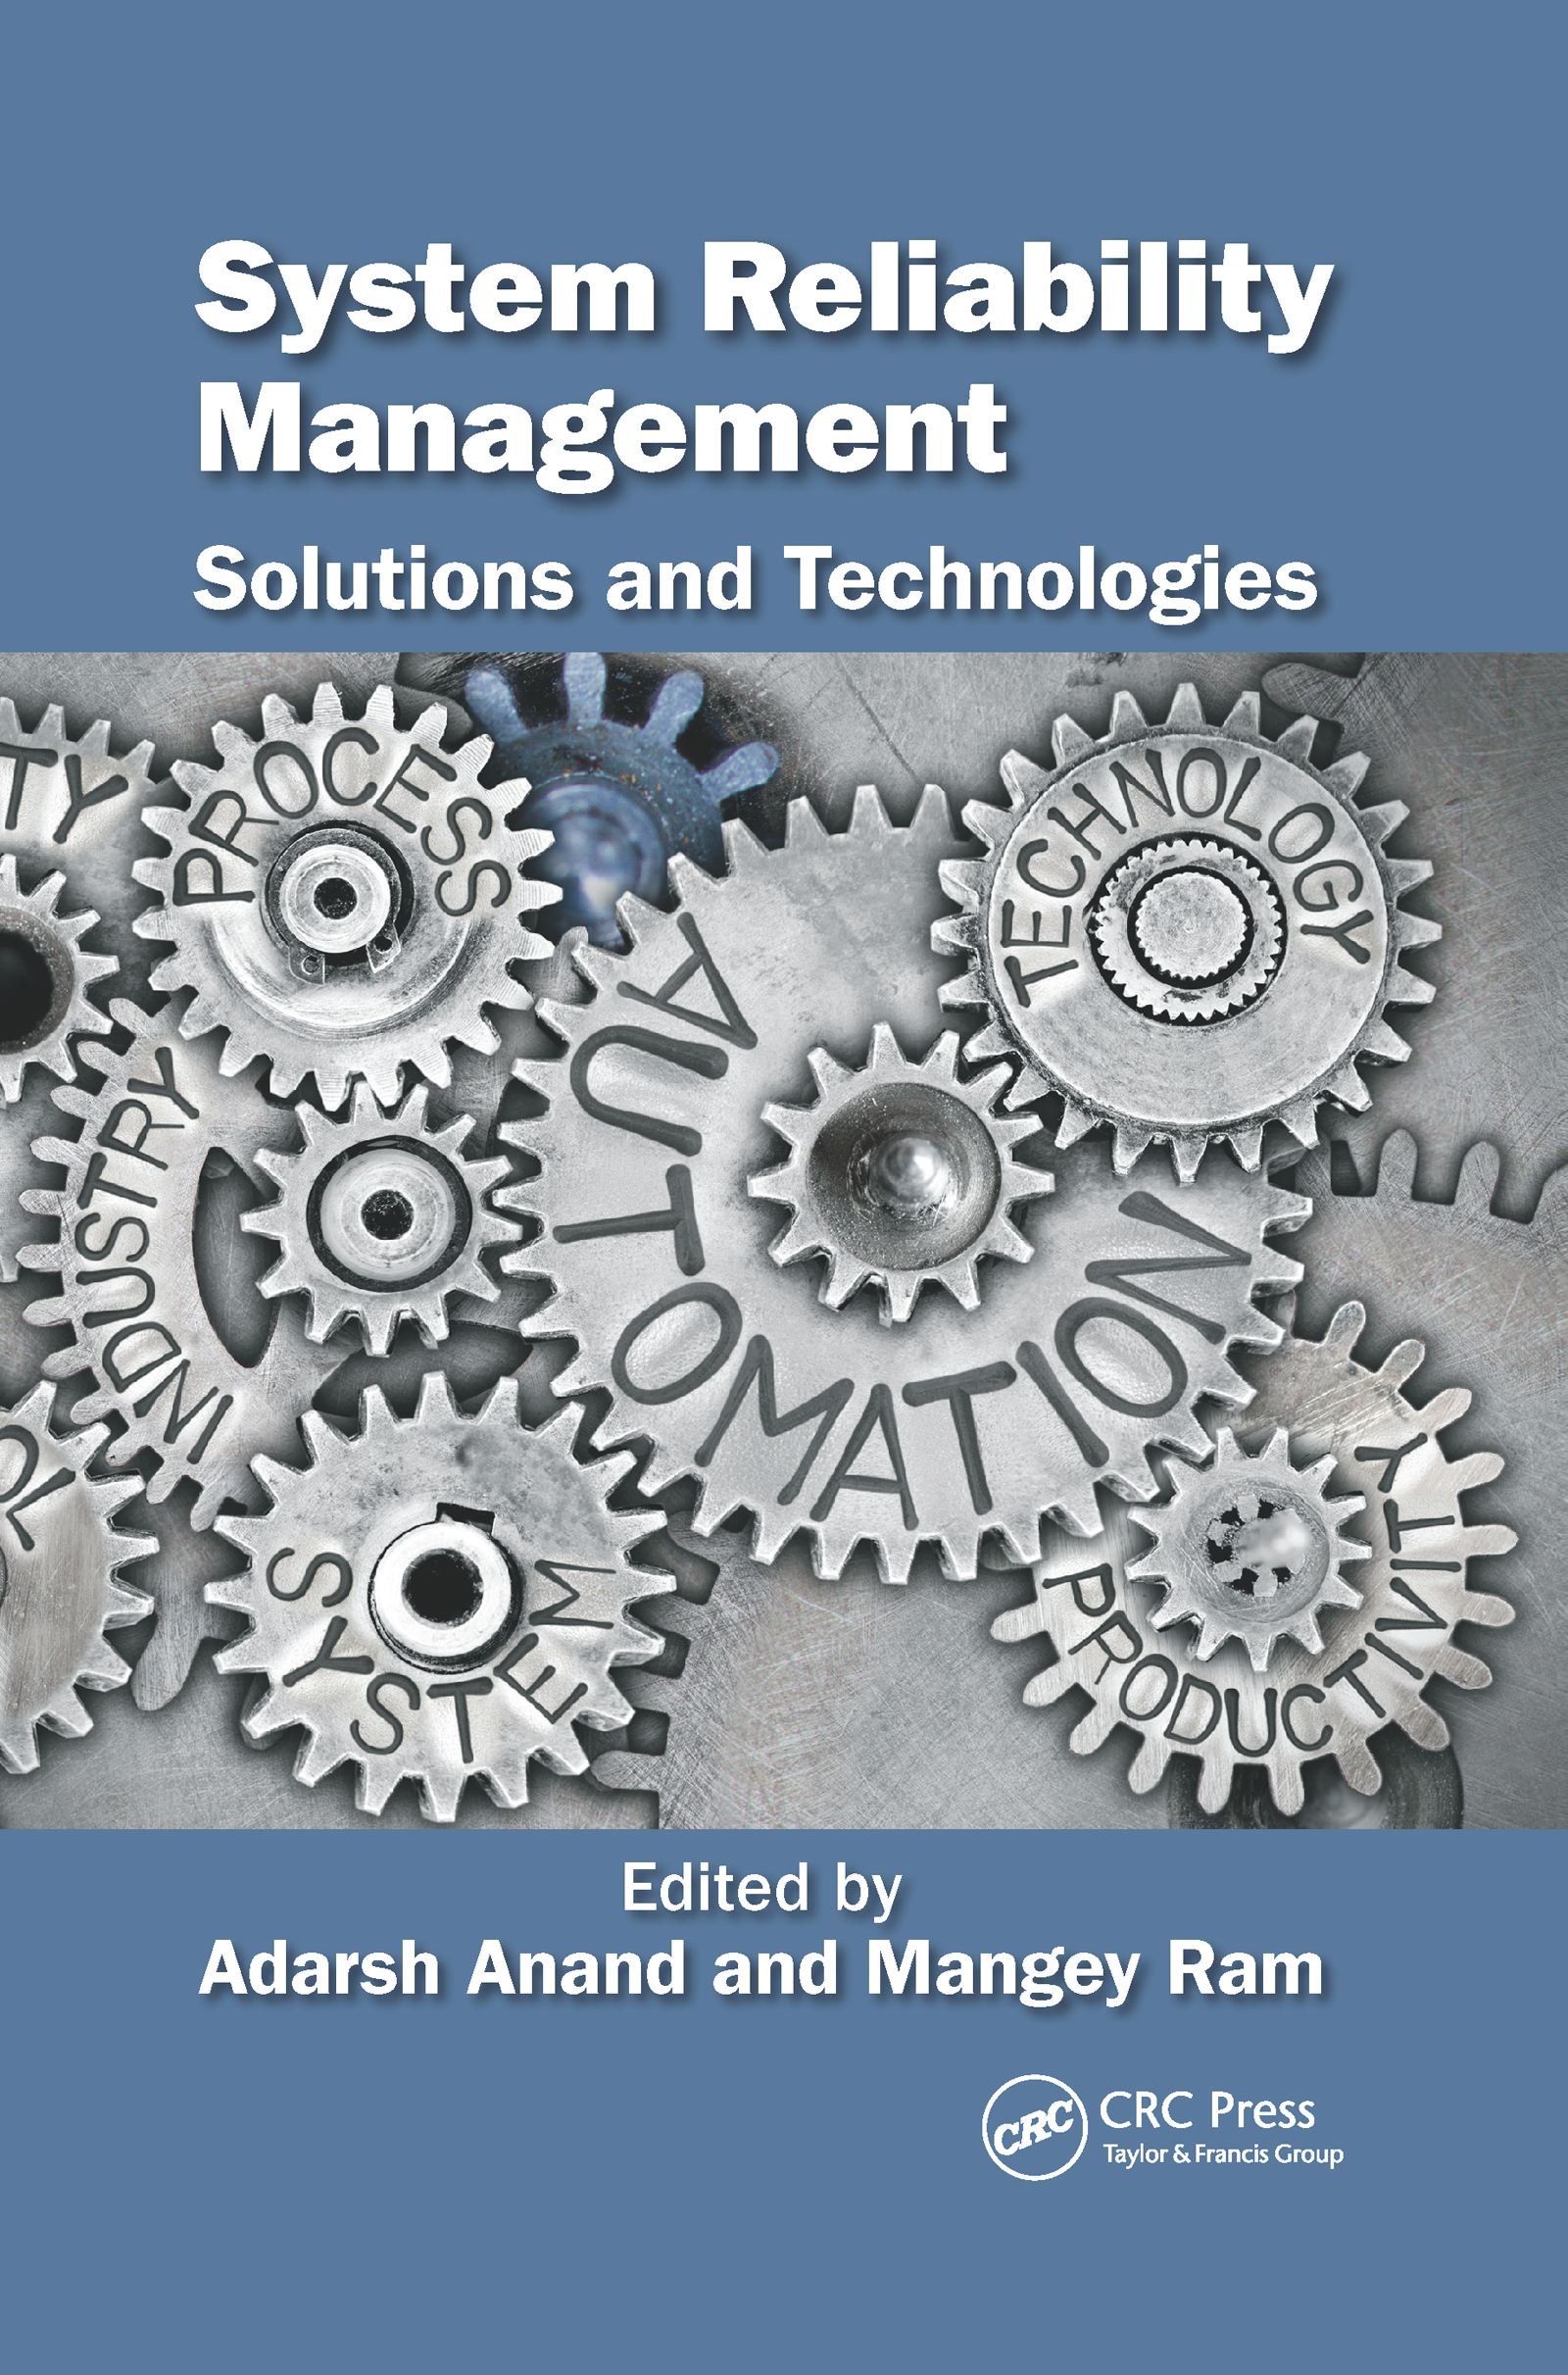 System Reliability Management